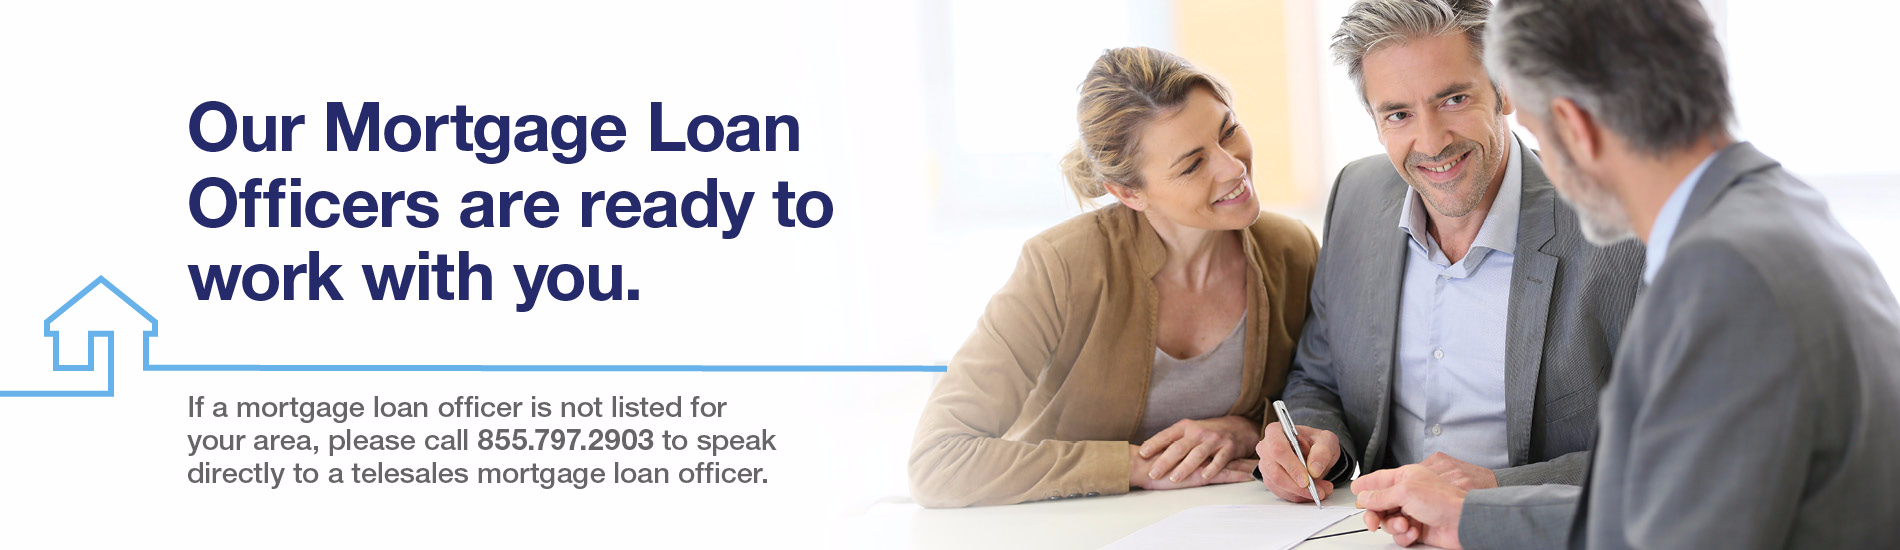 loans for authorize officers s as purchases original a and important work what the major with make office advice officer demand others assist you need loan is individuals help careerbuilder to rise on here institutions